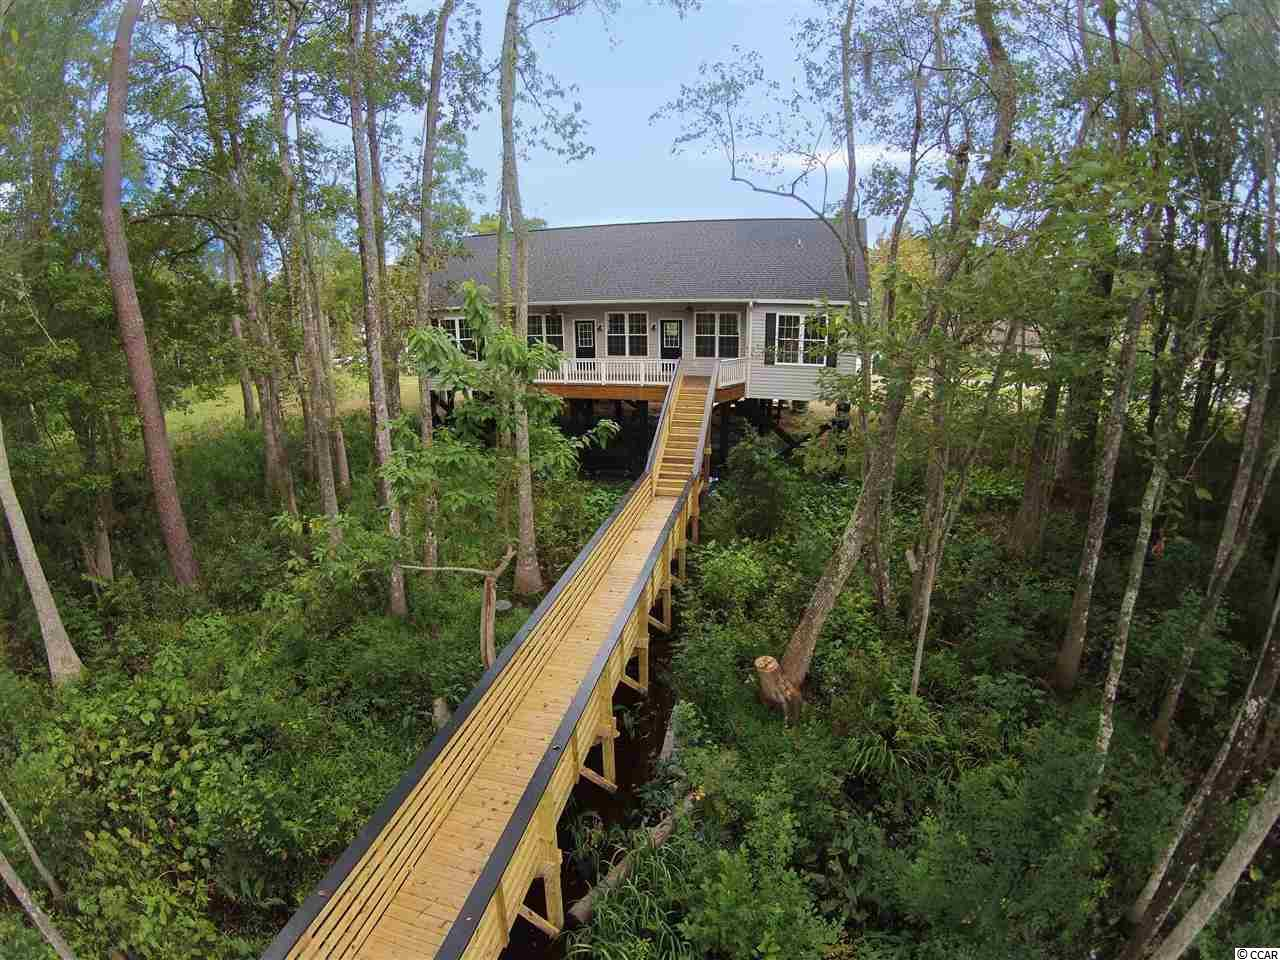 3bed/2ba house Right ON the Intracoastal Waterway and NO HOA!  Granite countertops and hardwood floors! Ceiling fans in every room. Large open floor plan. Oversized deck stretches across the entire back of this house so you are part of nature and water from almost every room in the house.  Walk down the walkway lined by beautiful trees and natural landscaping to the new pierhead to your docked boat or just watch the boats go by. LOTS of parking including a detached carport which also includes a storage room. This is a nature-lovers dream house but convenient to everything Myrtle Beach has to offer including Coastal Grande Mall, Tanger Outlets, marinas, public docks, landings, restaurants, golf courses, shops, entertainment, Myrtle Beach International Airport, Broadway At The Beach, The Market Common, Barefoot Resort and Coastal Carolina Univeristy (CCU).  Perfect for a primary or 2nd home. The Waterfront is a secluded 5-lot subdivision directly on the Intercoastal Waterway. Adjacent Lot (to the left of the house) is also available for sale! MLS 1804913.